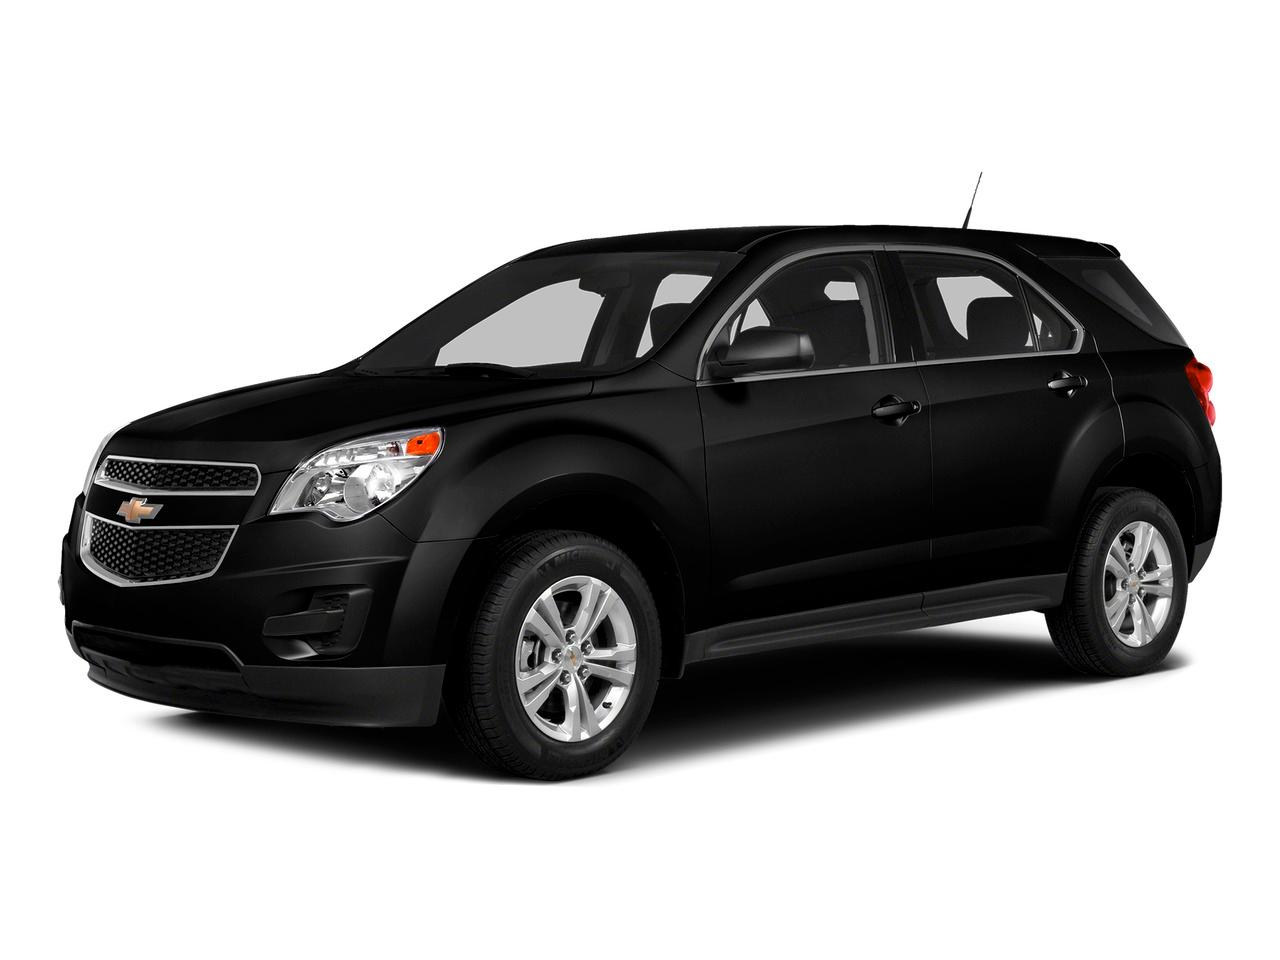 2015 Chevrolet Equinox Vehicle Photo in Clifton, NJ 07013